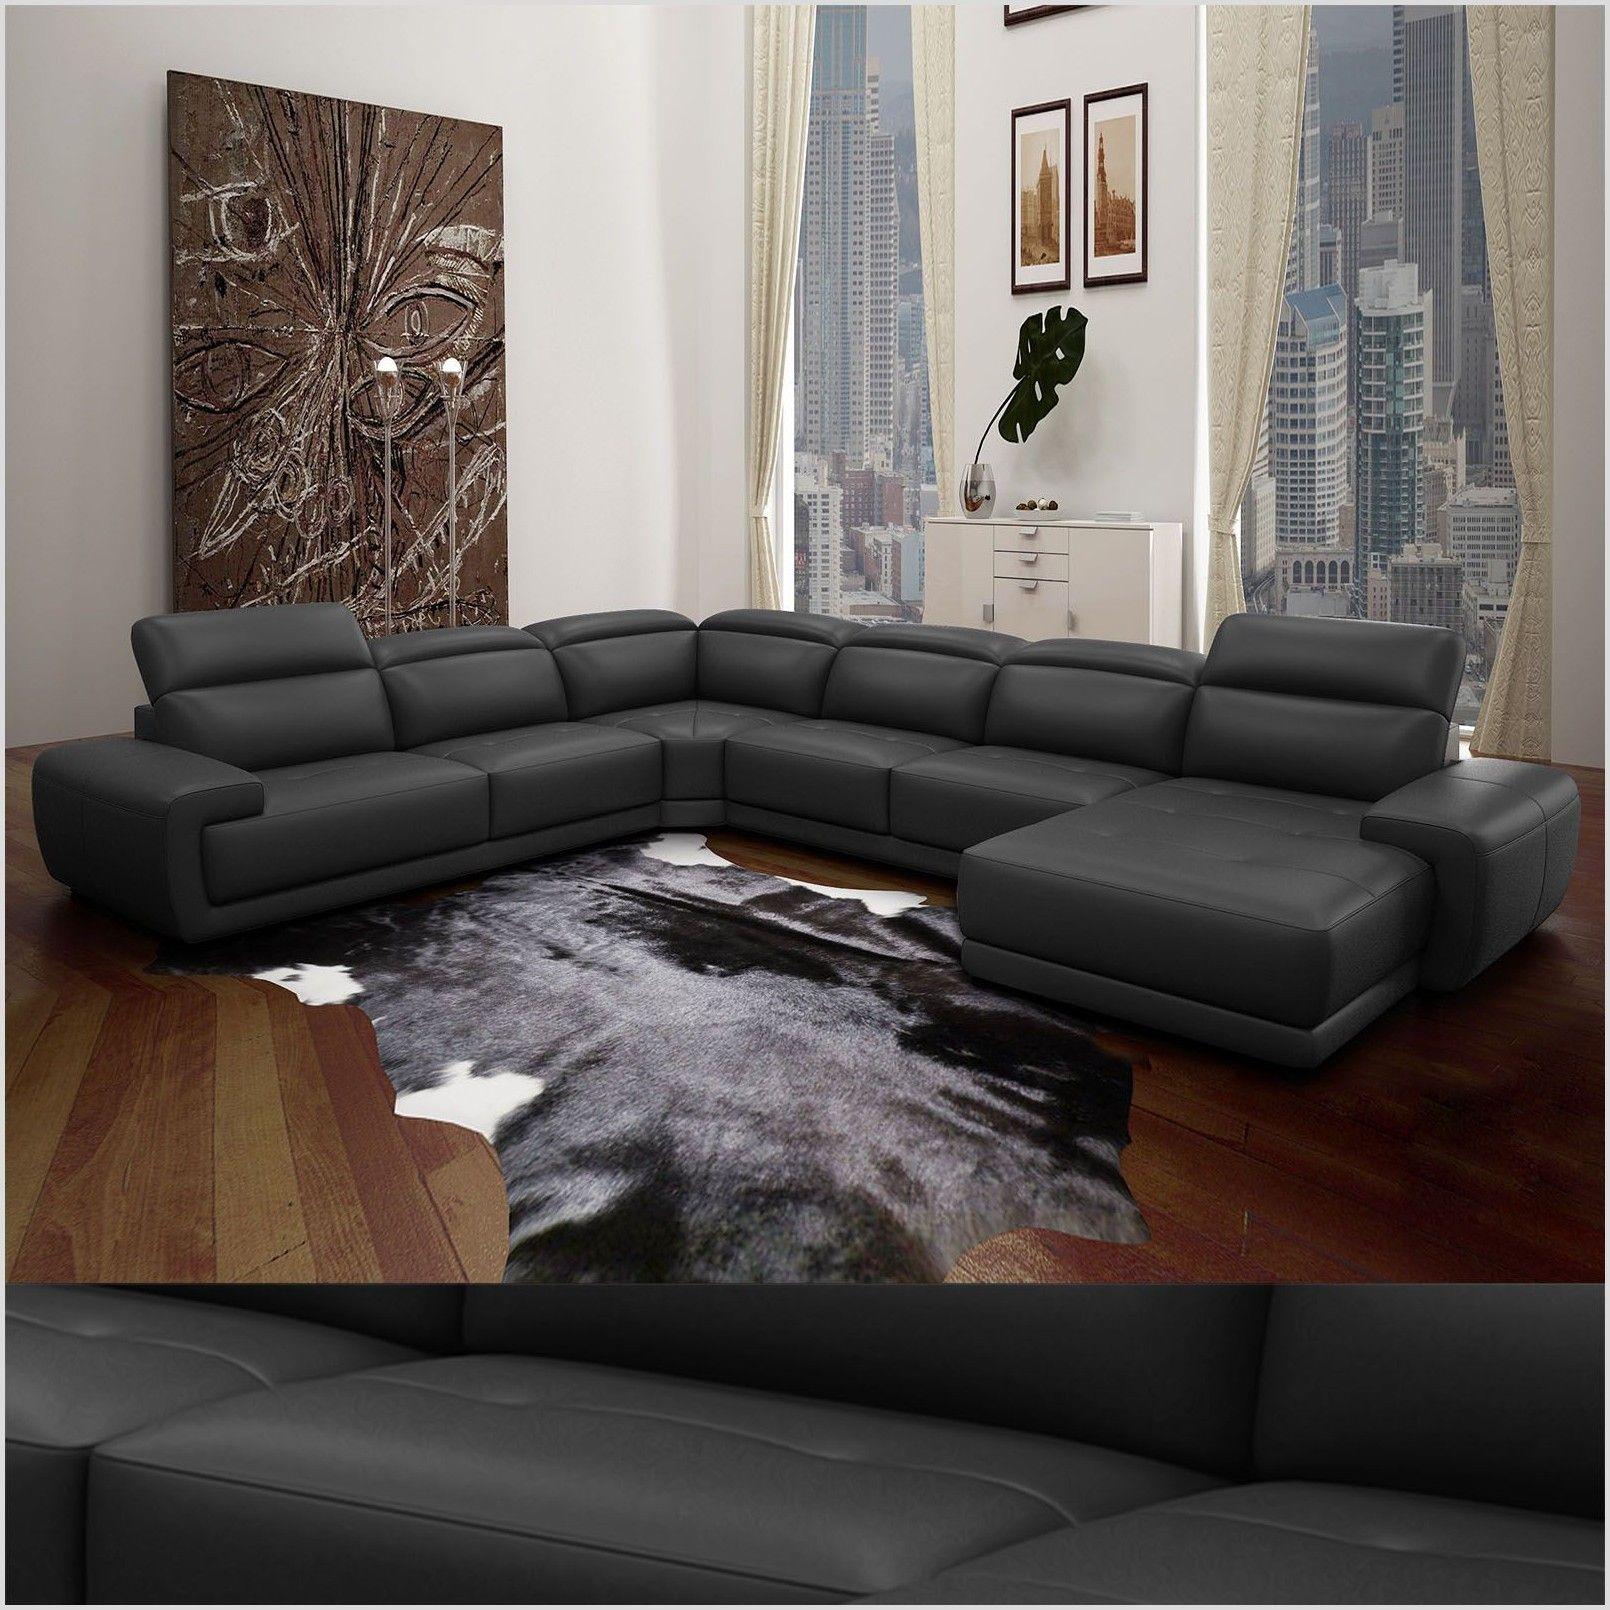 Pin Auf Cloud Couch Gray